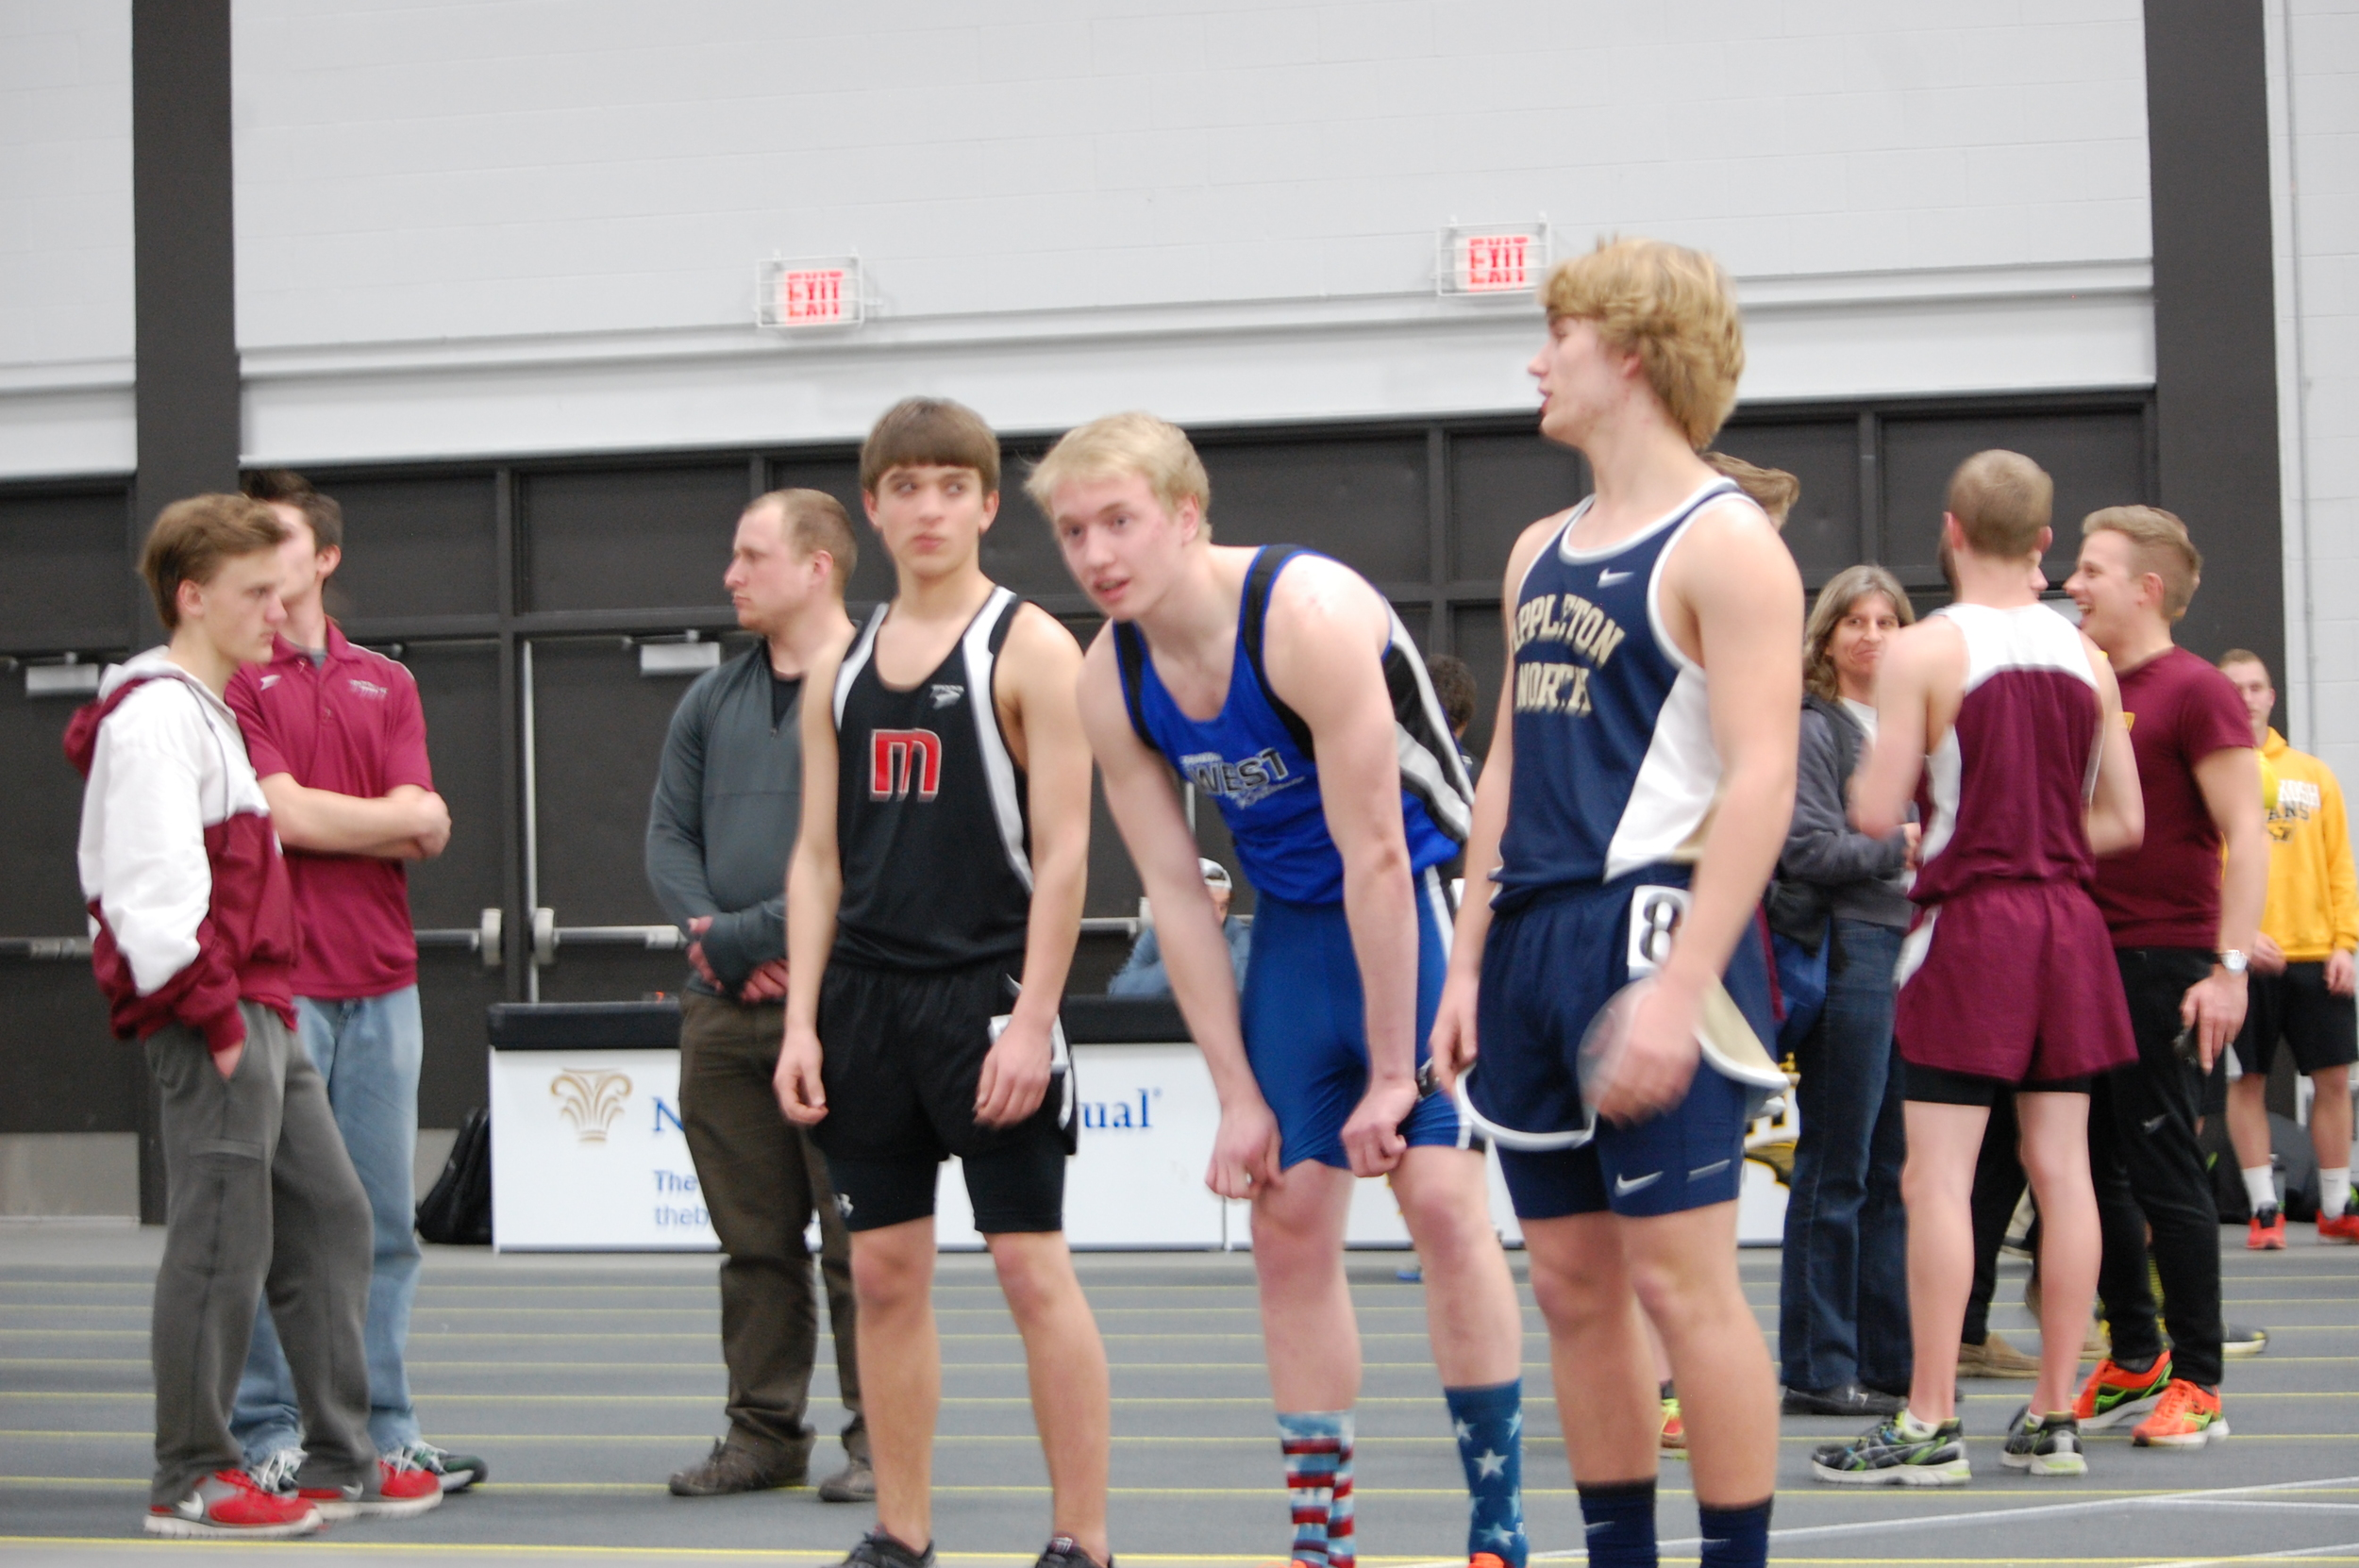 Junior Chance Proehl gets prepped for his 800 meter race.